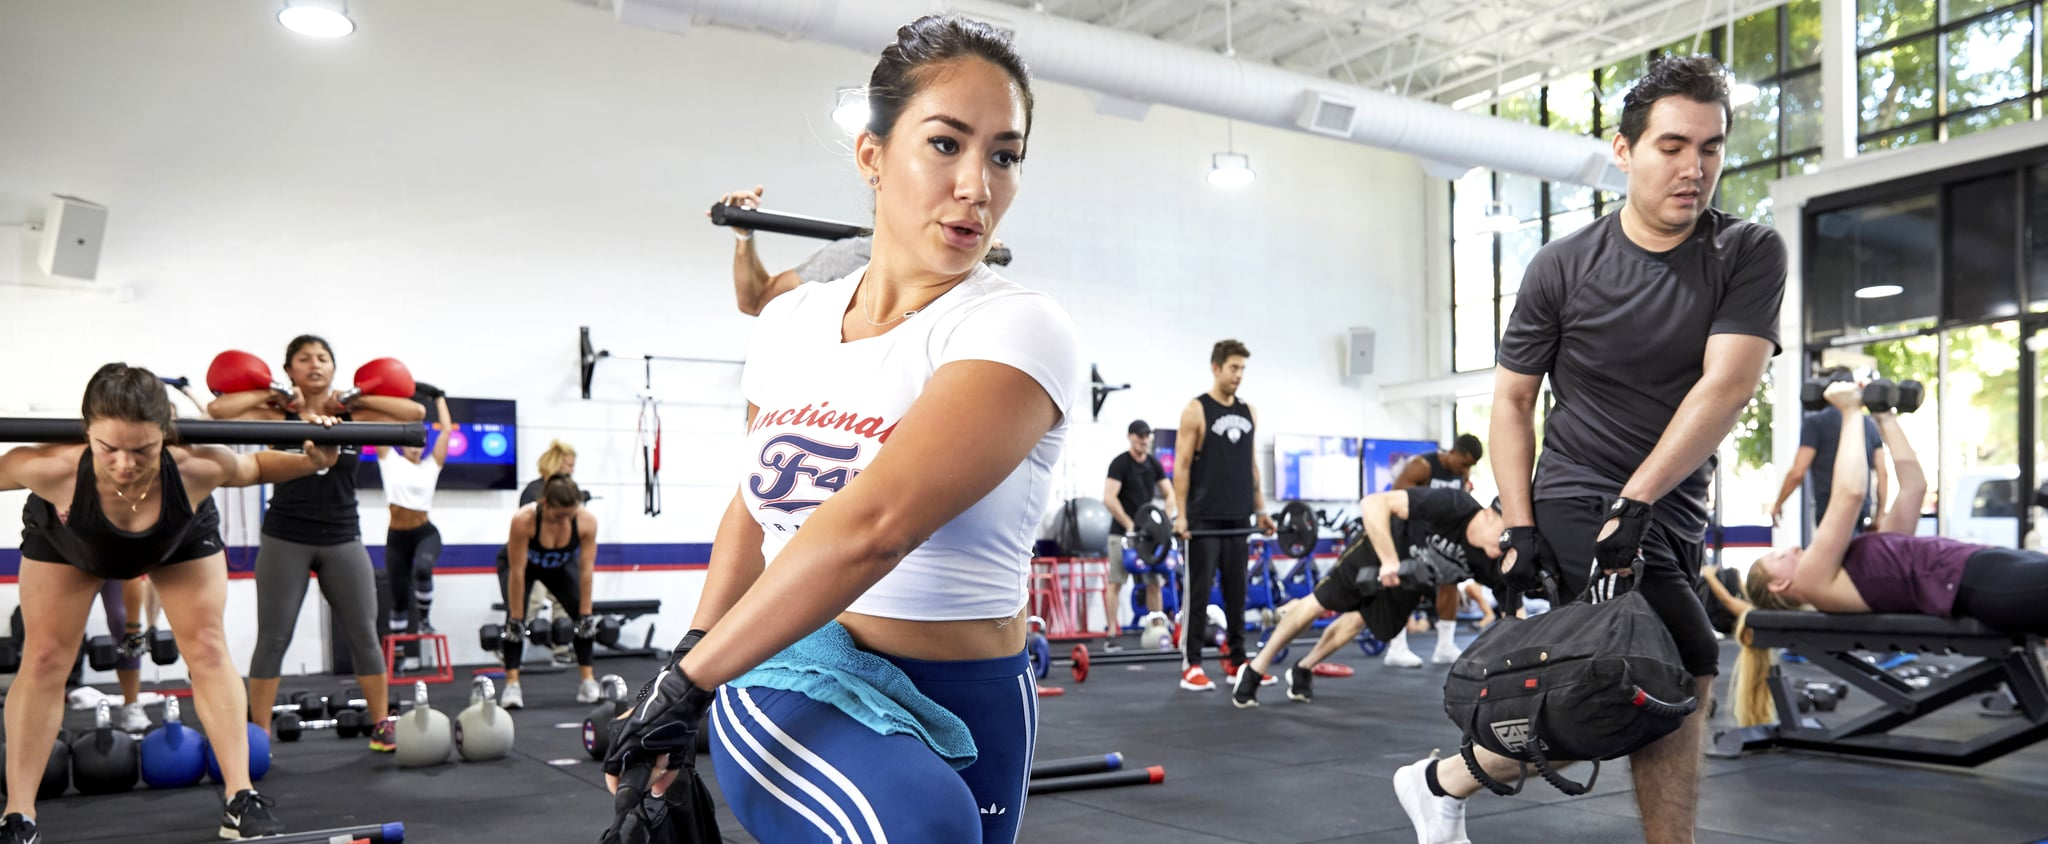 Is the F45 8-Week Challenge Worth the Money?